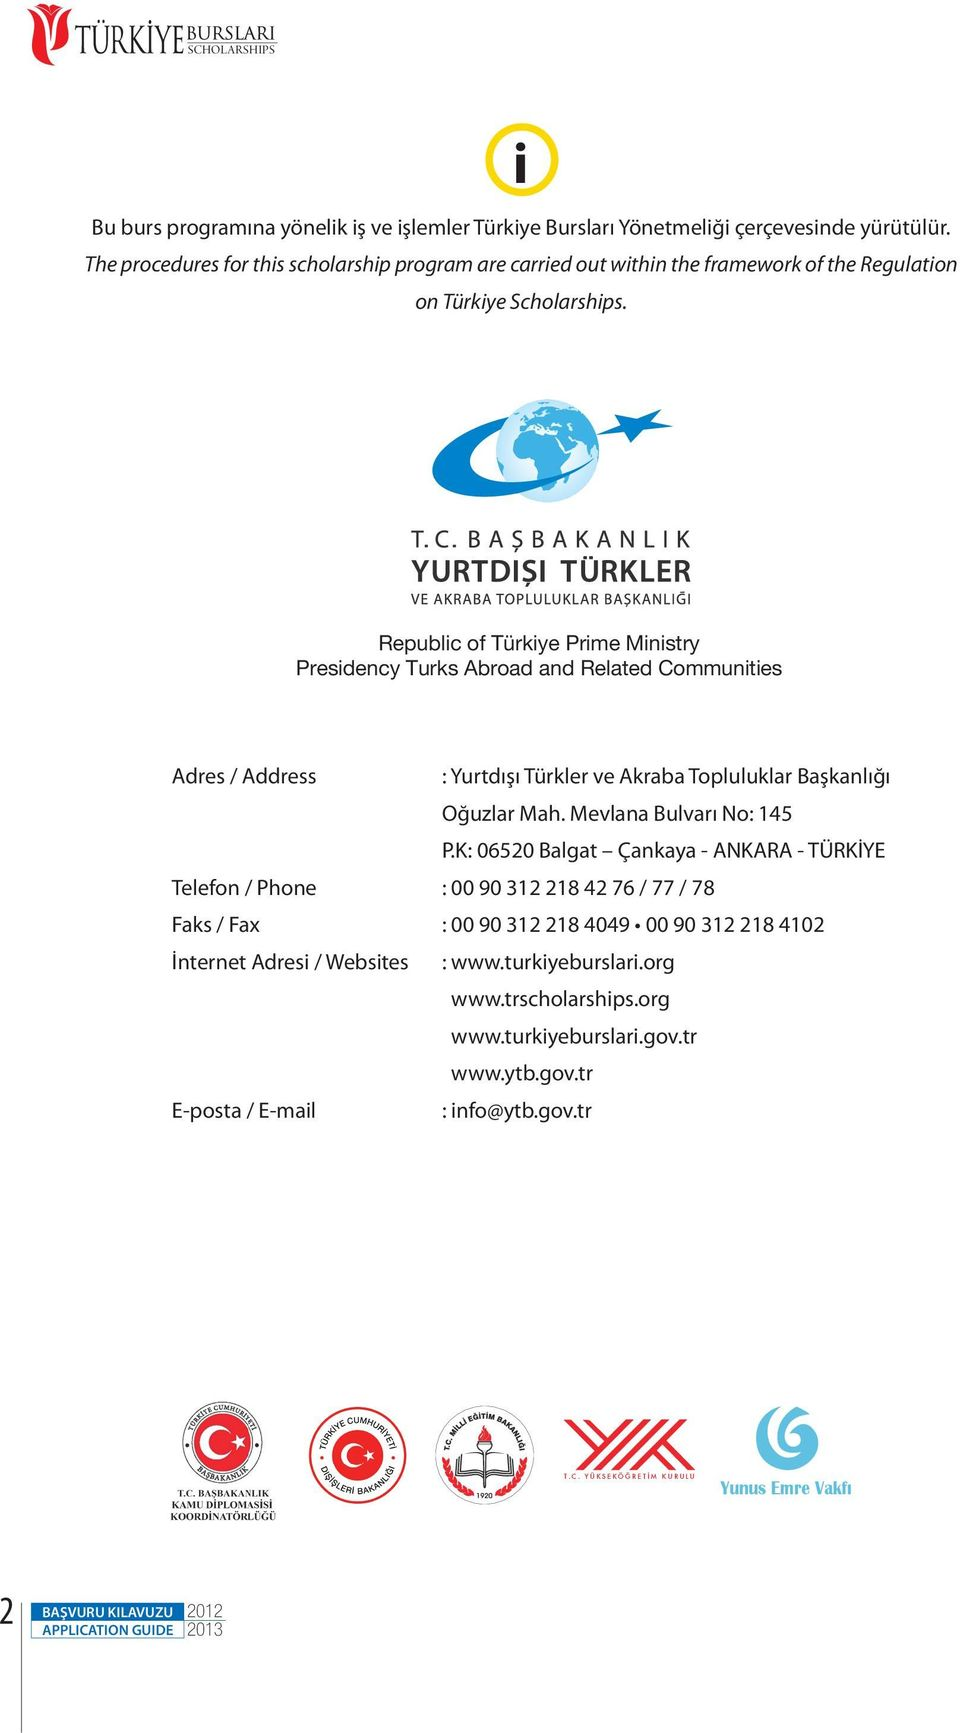 Republic of Türkiye Prime Ministry Presidency Turks Abroad and Related Communities Adres / Address : Yurtdışı Türkler ve Akraba Topluluklar Başkanlığı Oğuzlar Mah. Mevlana Bulvarı No: 145 P.